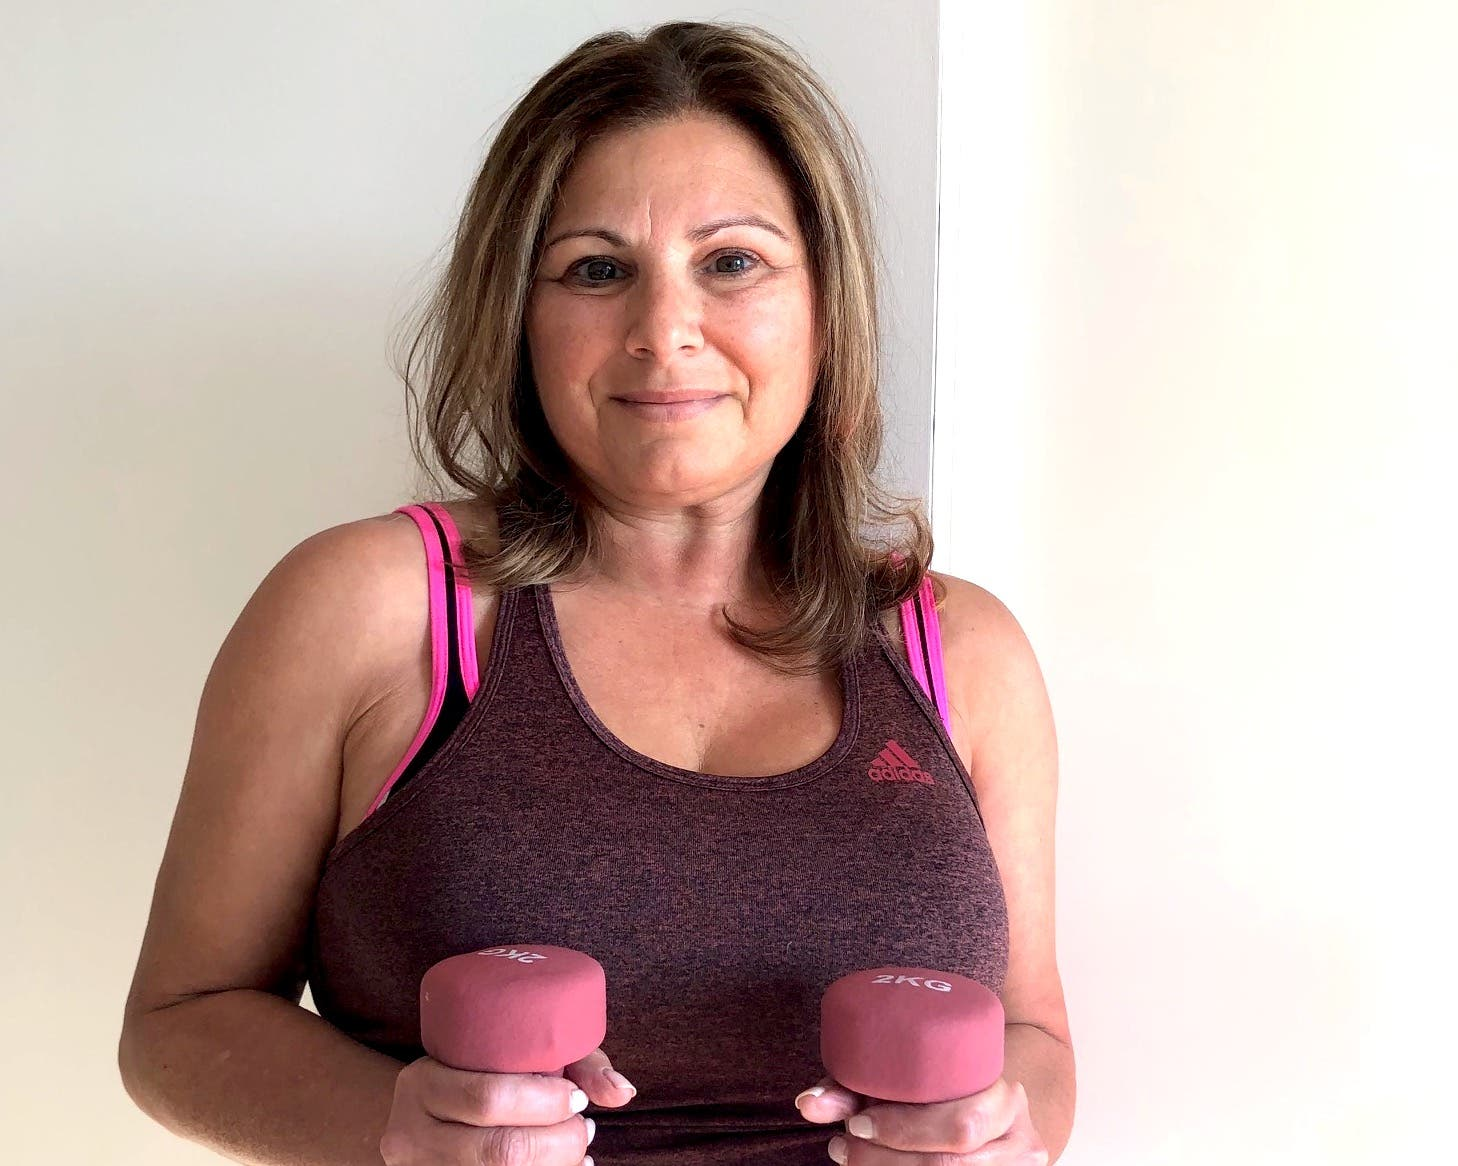 Member Profile - Bea working out at home